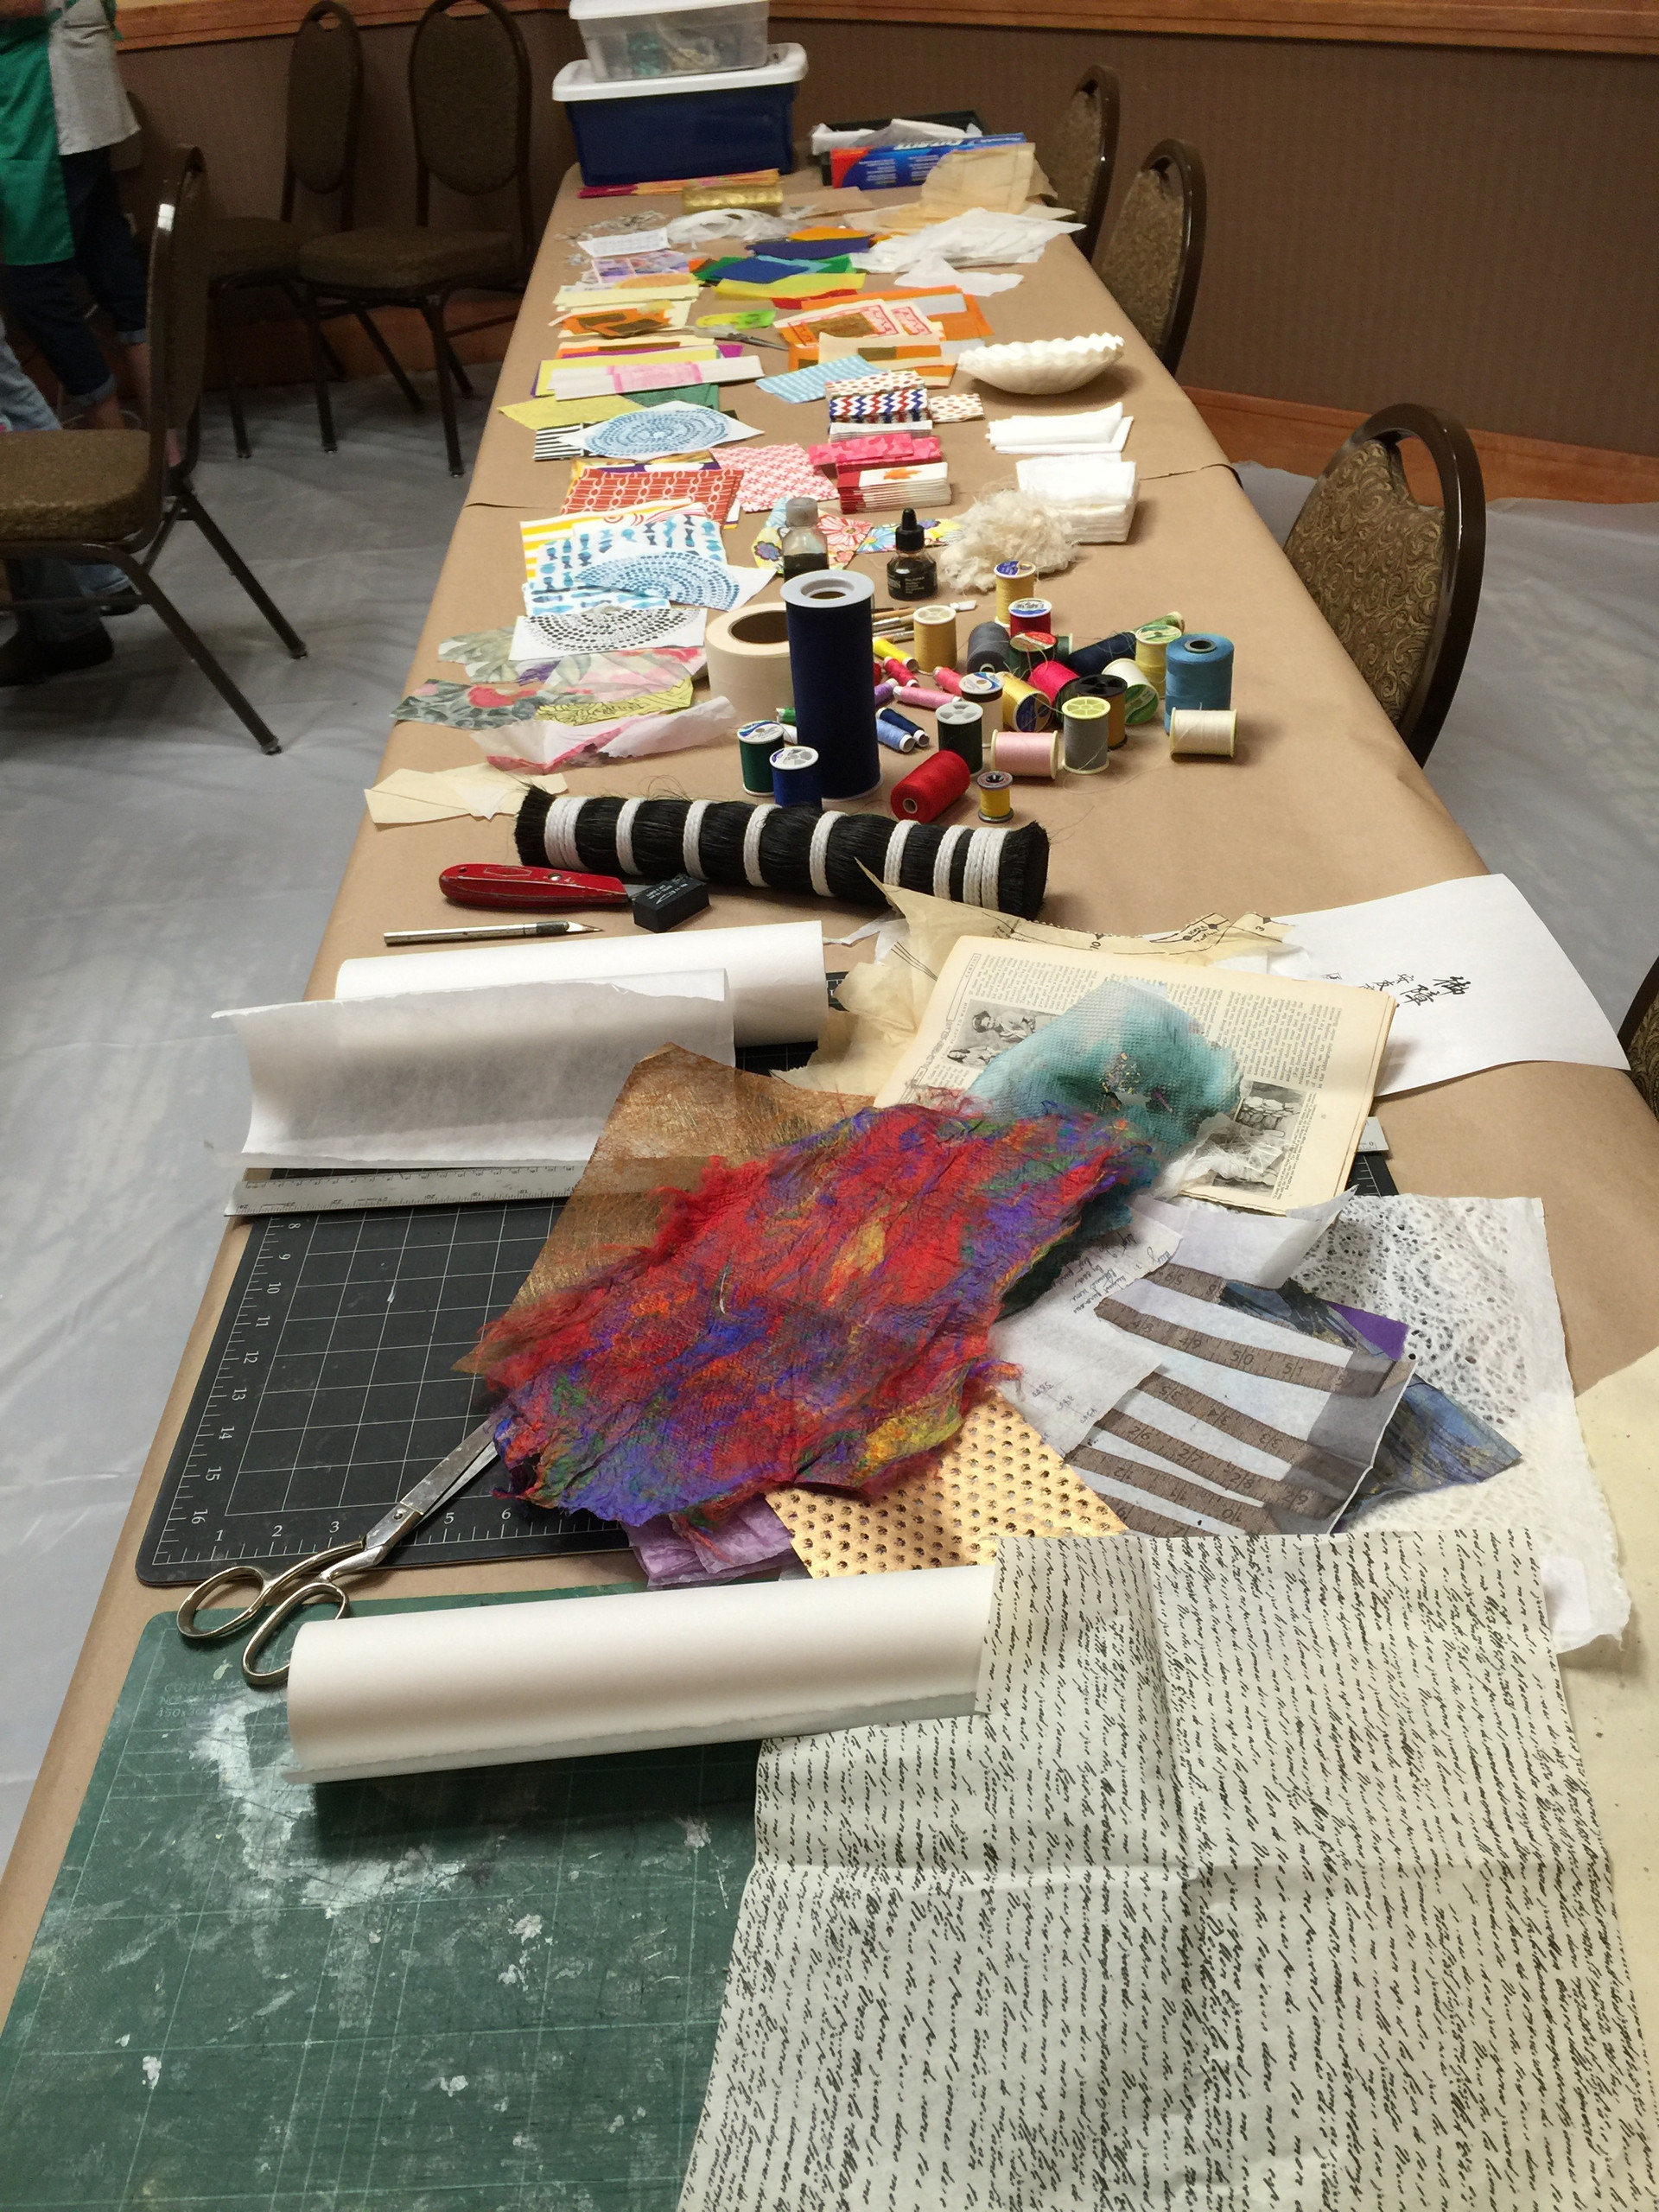 Prepping for Paper Collage with Encaustic